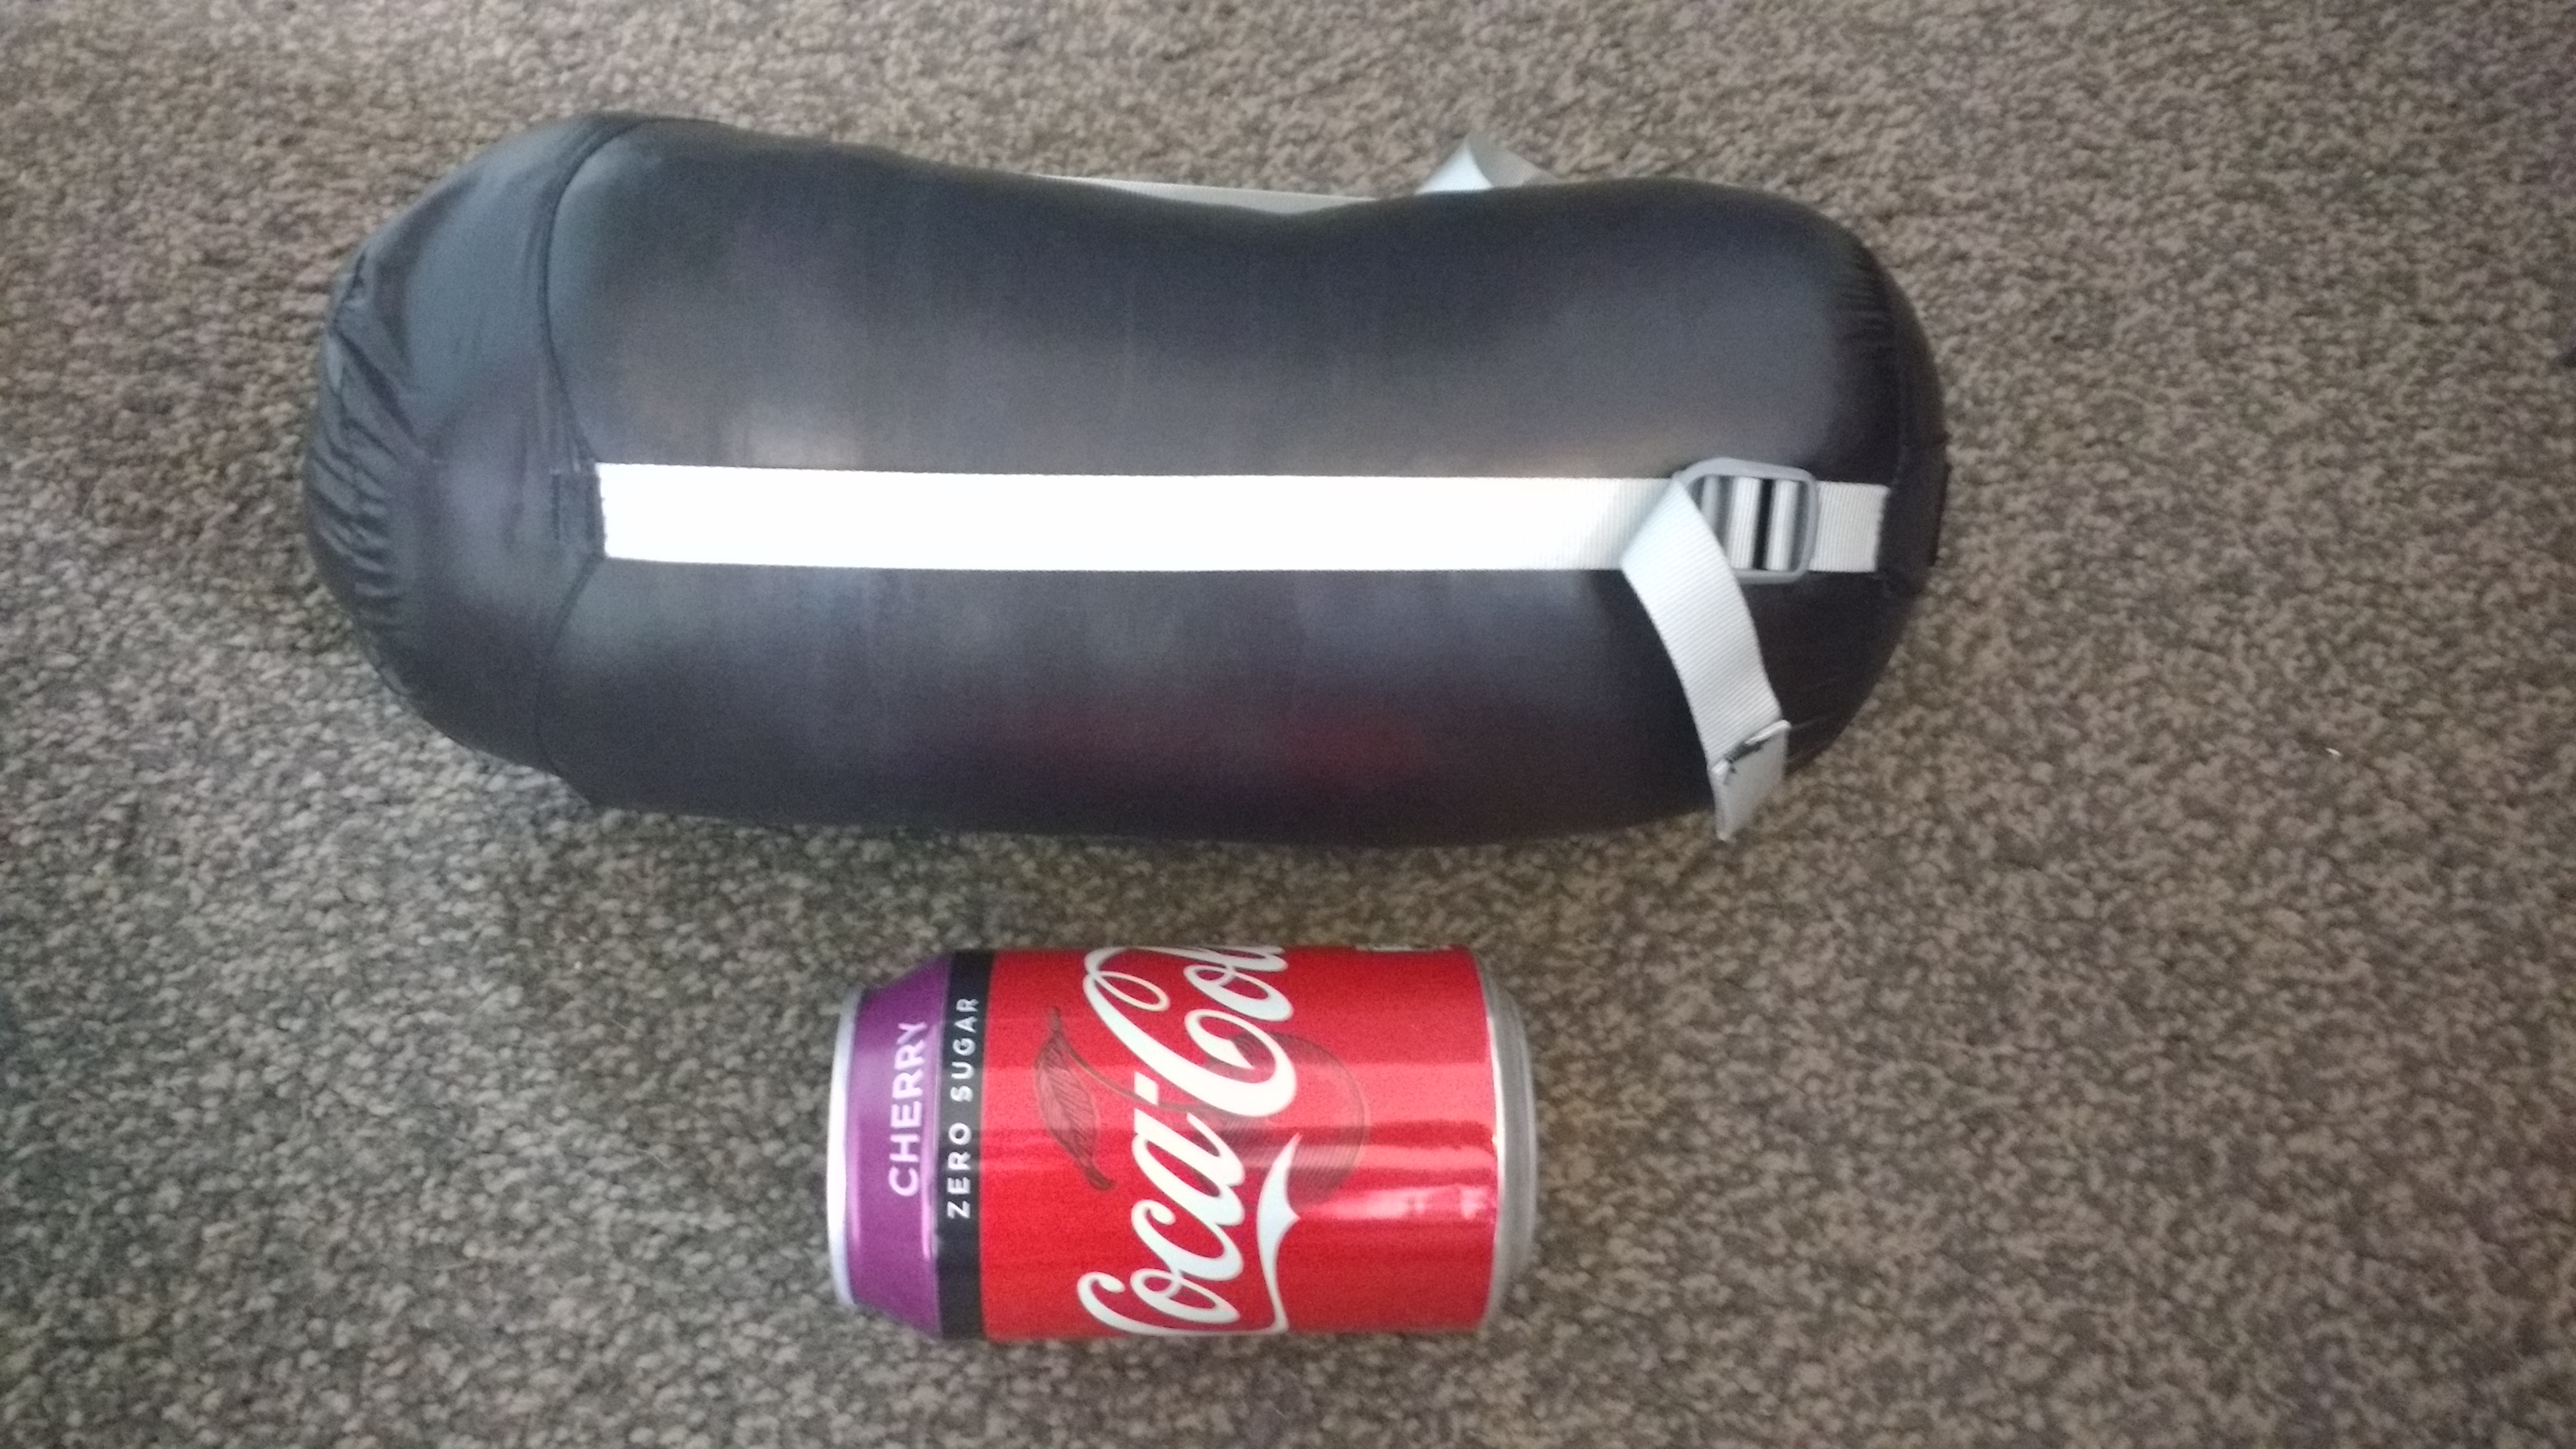 The Aegismax Sleeping Bag Compared To A Coke Can